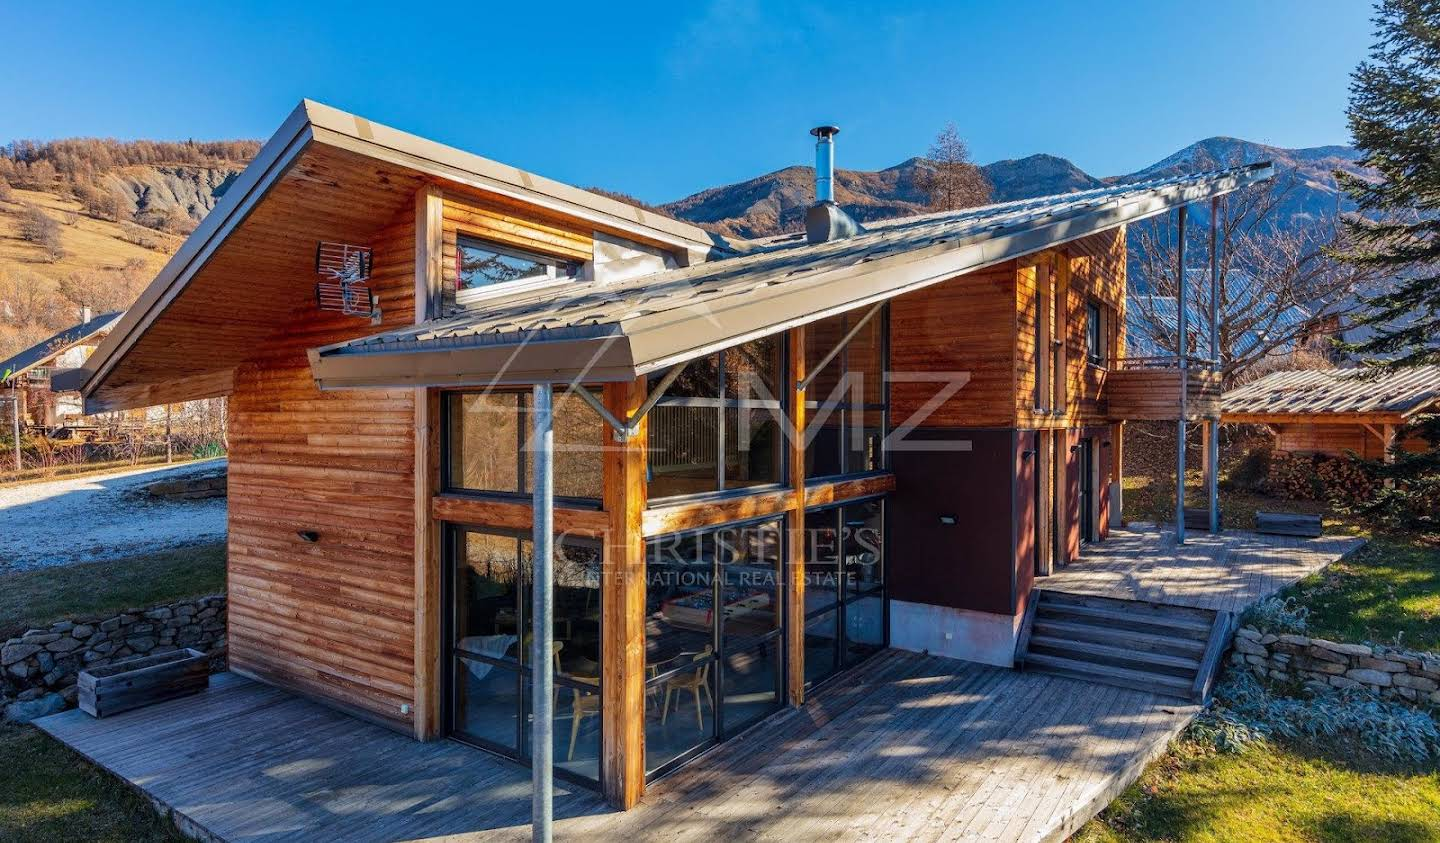 Chalet Allos